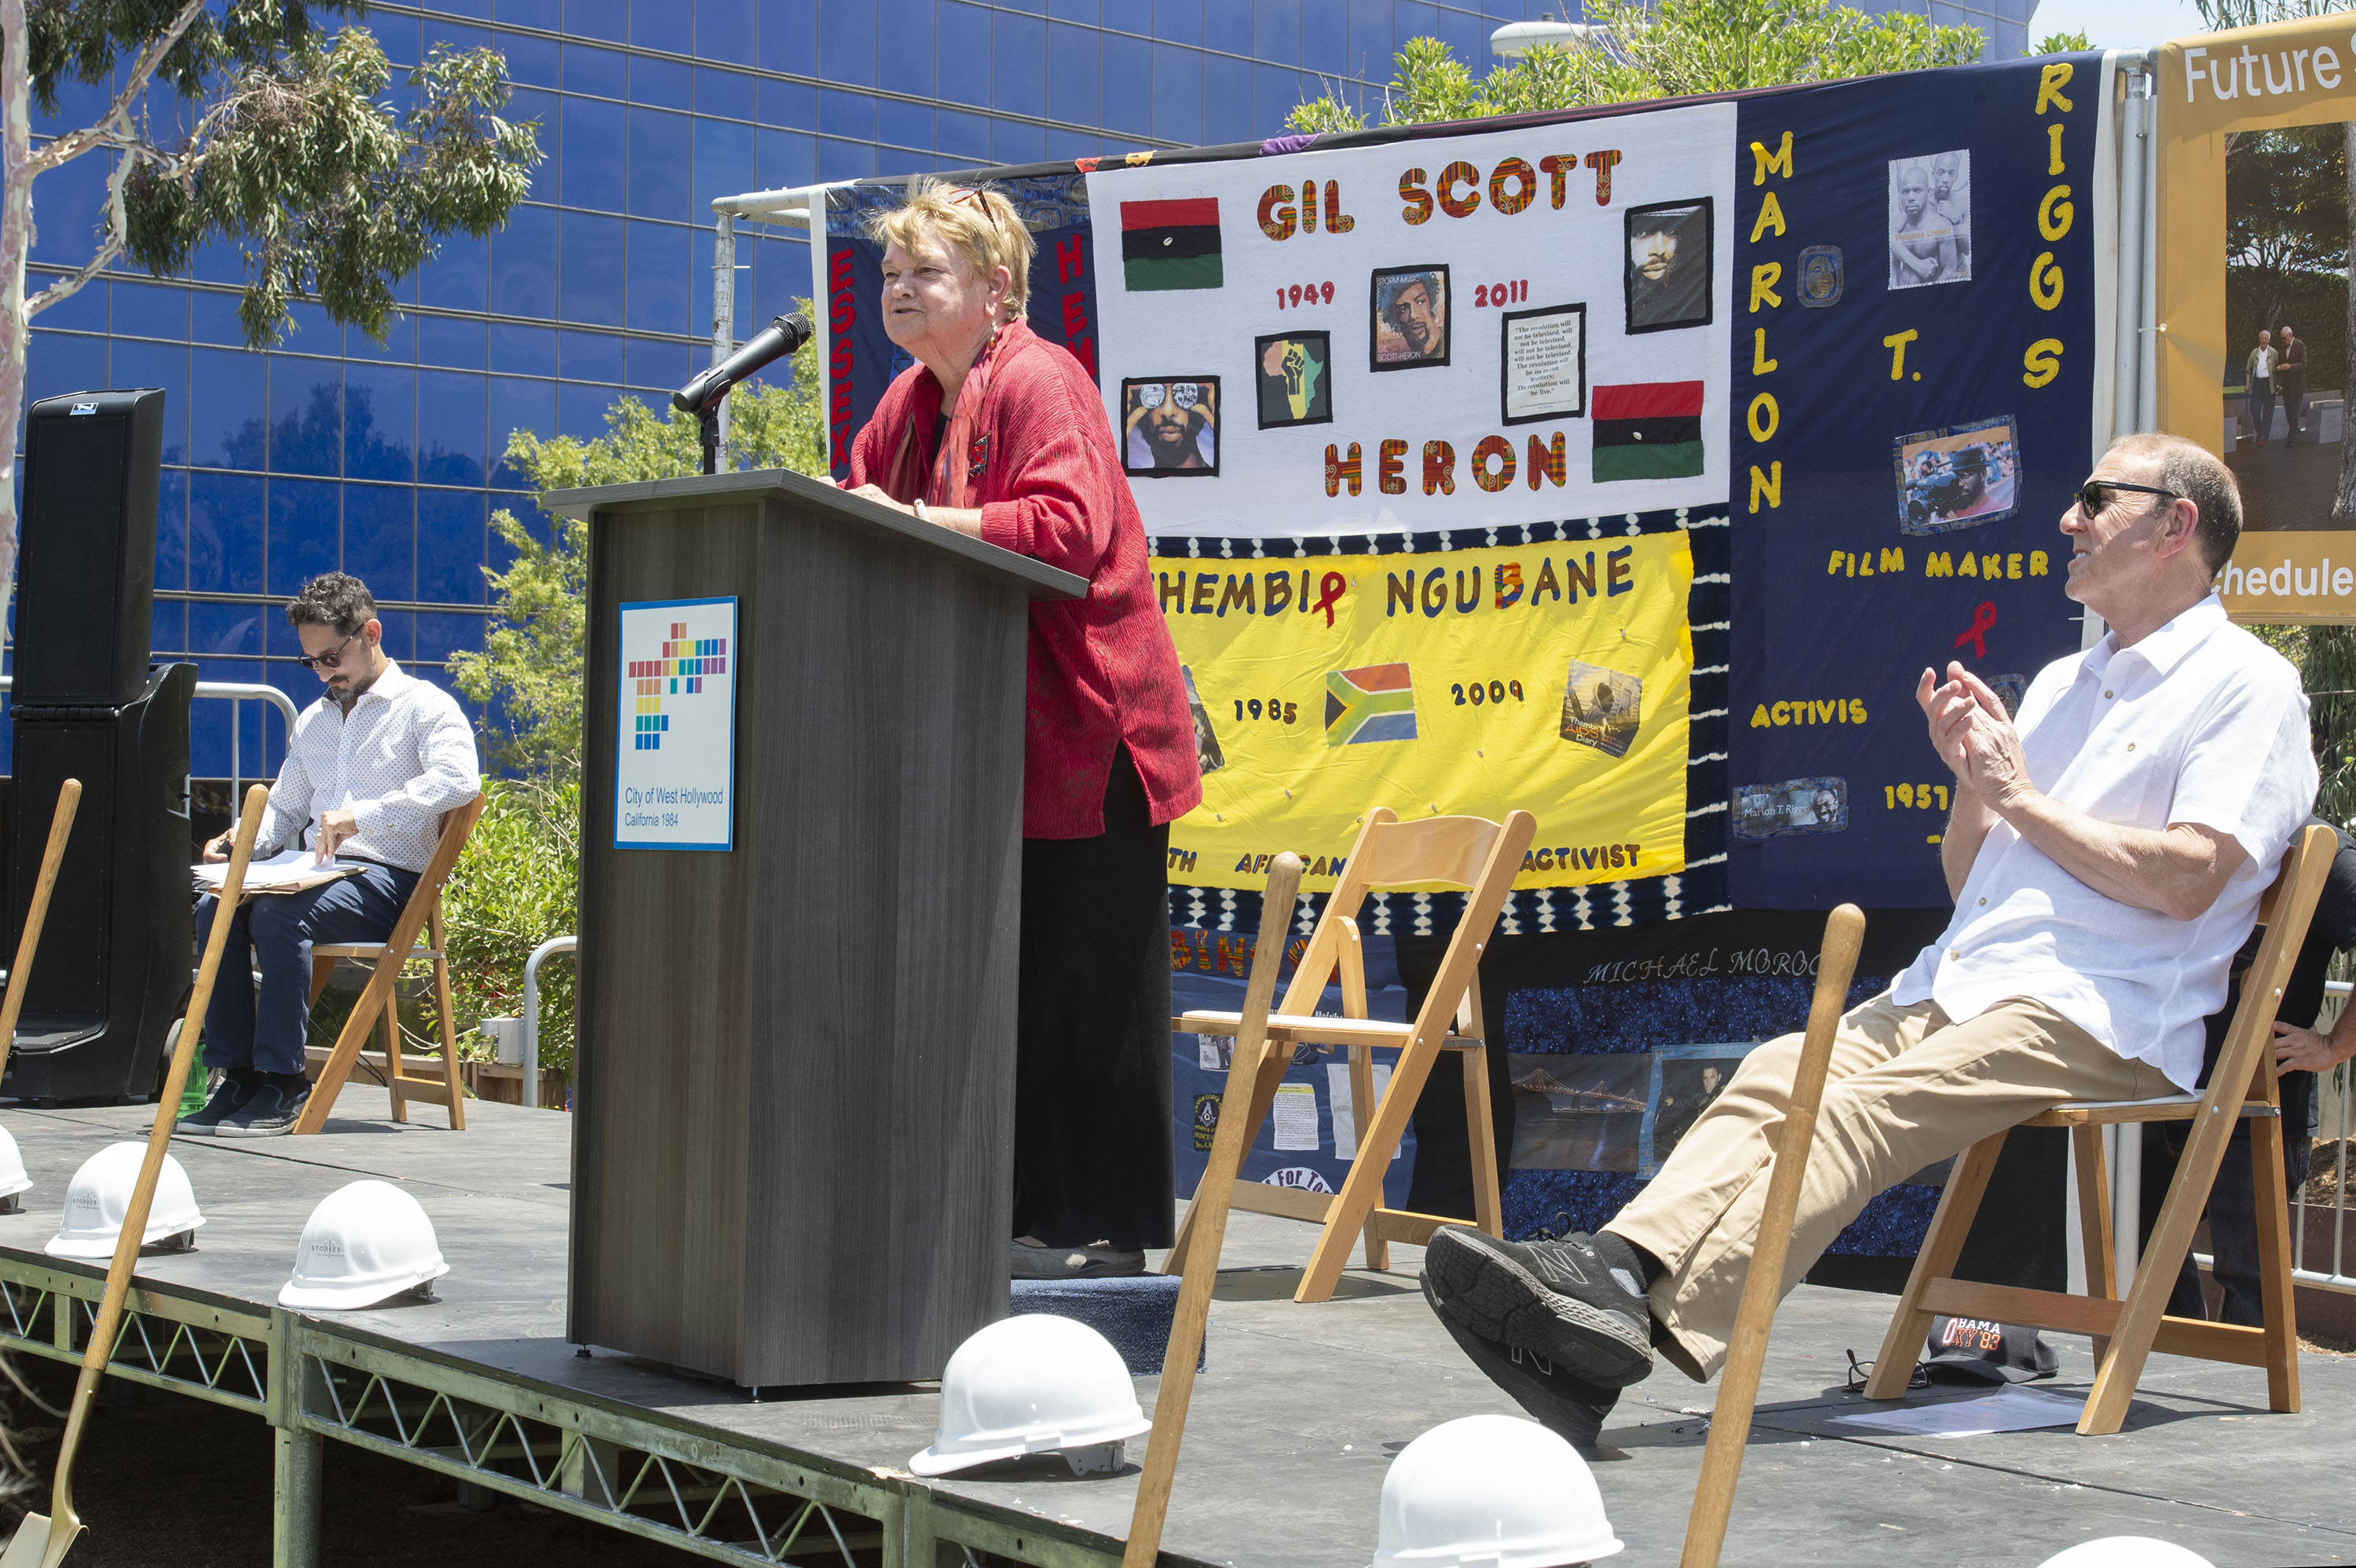 District 3 – Supervisor Sheila Kuehl<br> <b>June 5, 2021 – AIDS Monument Dedication</b><br> <i>Photo by Karen Quincy Loberg / For the Board of Supervisors</i>